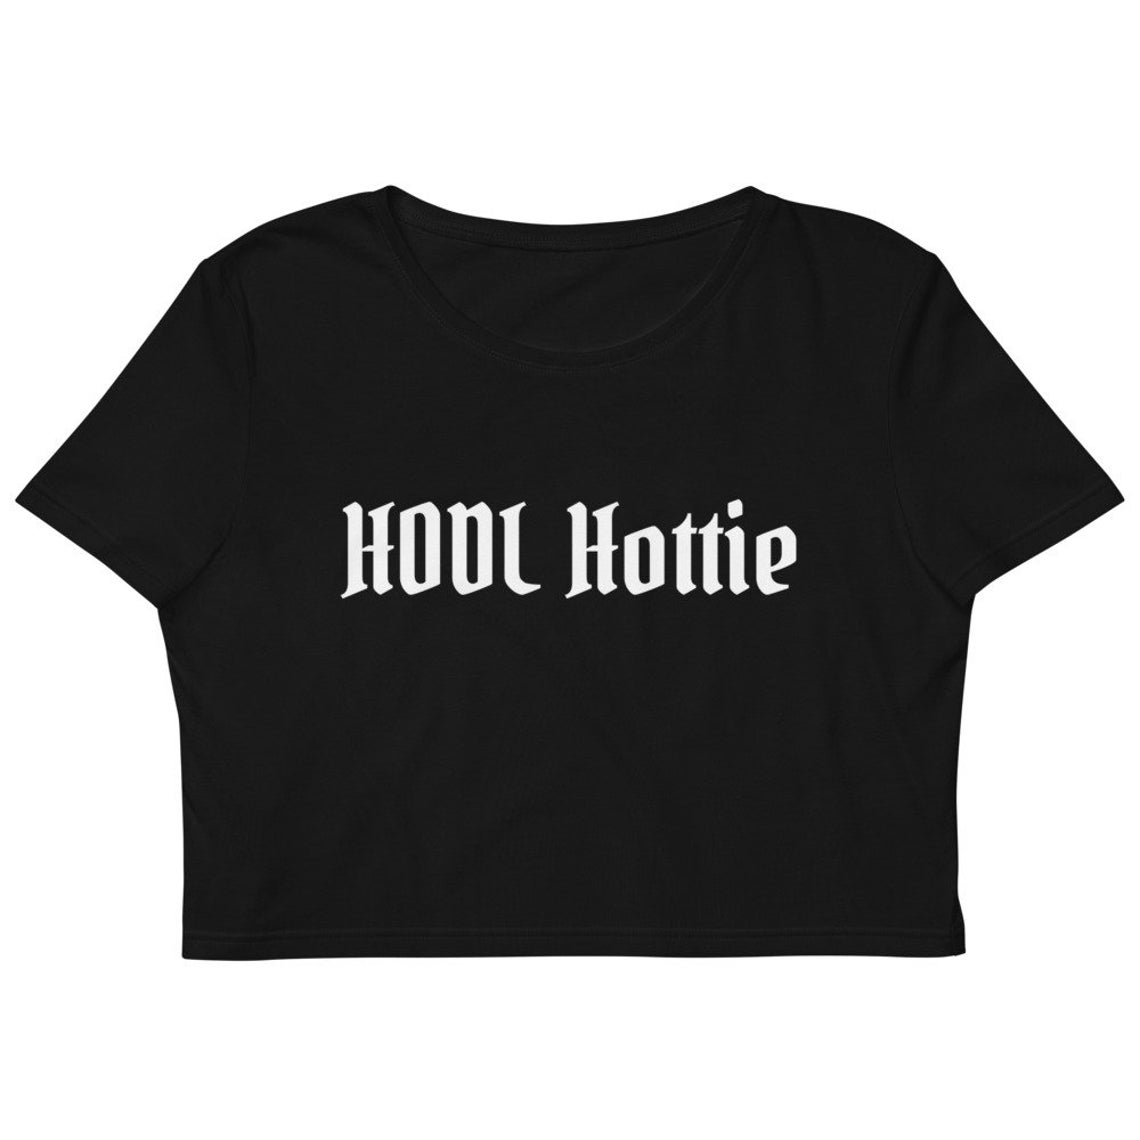 HODL Hottie Women's Bitcoin Organic Crop Top Shirt- Now Available in the Shop - 2 Different Color Options